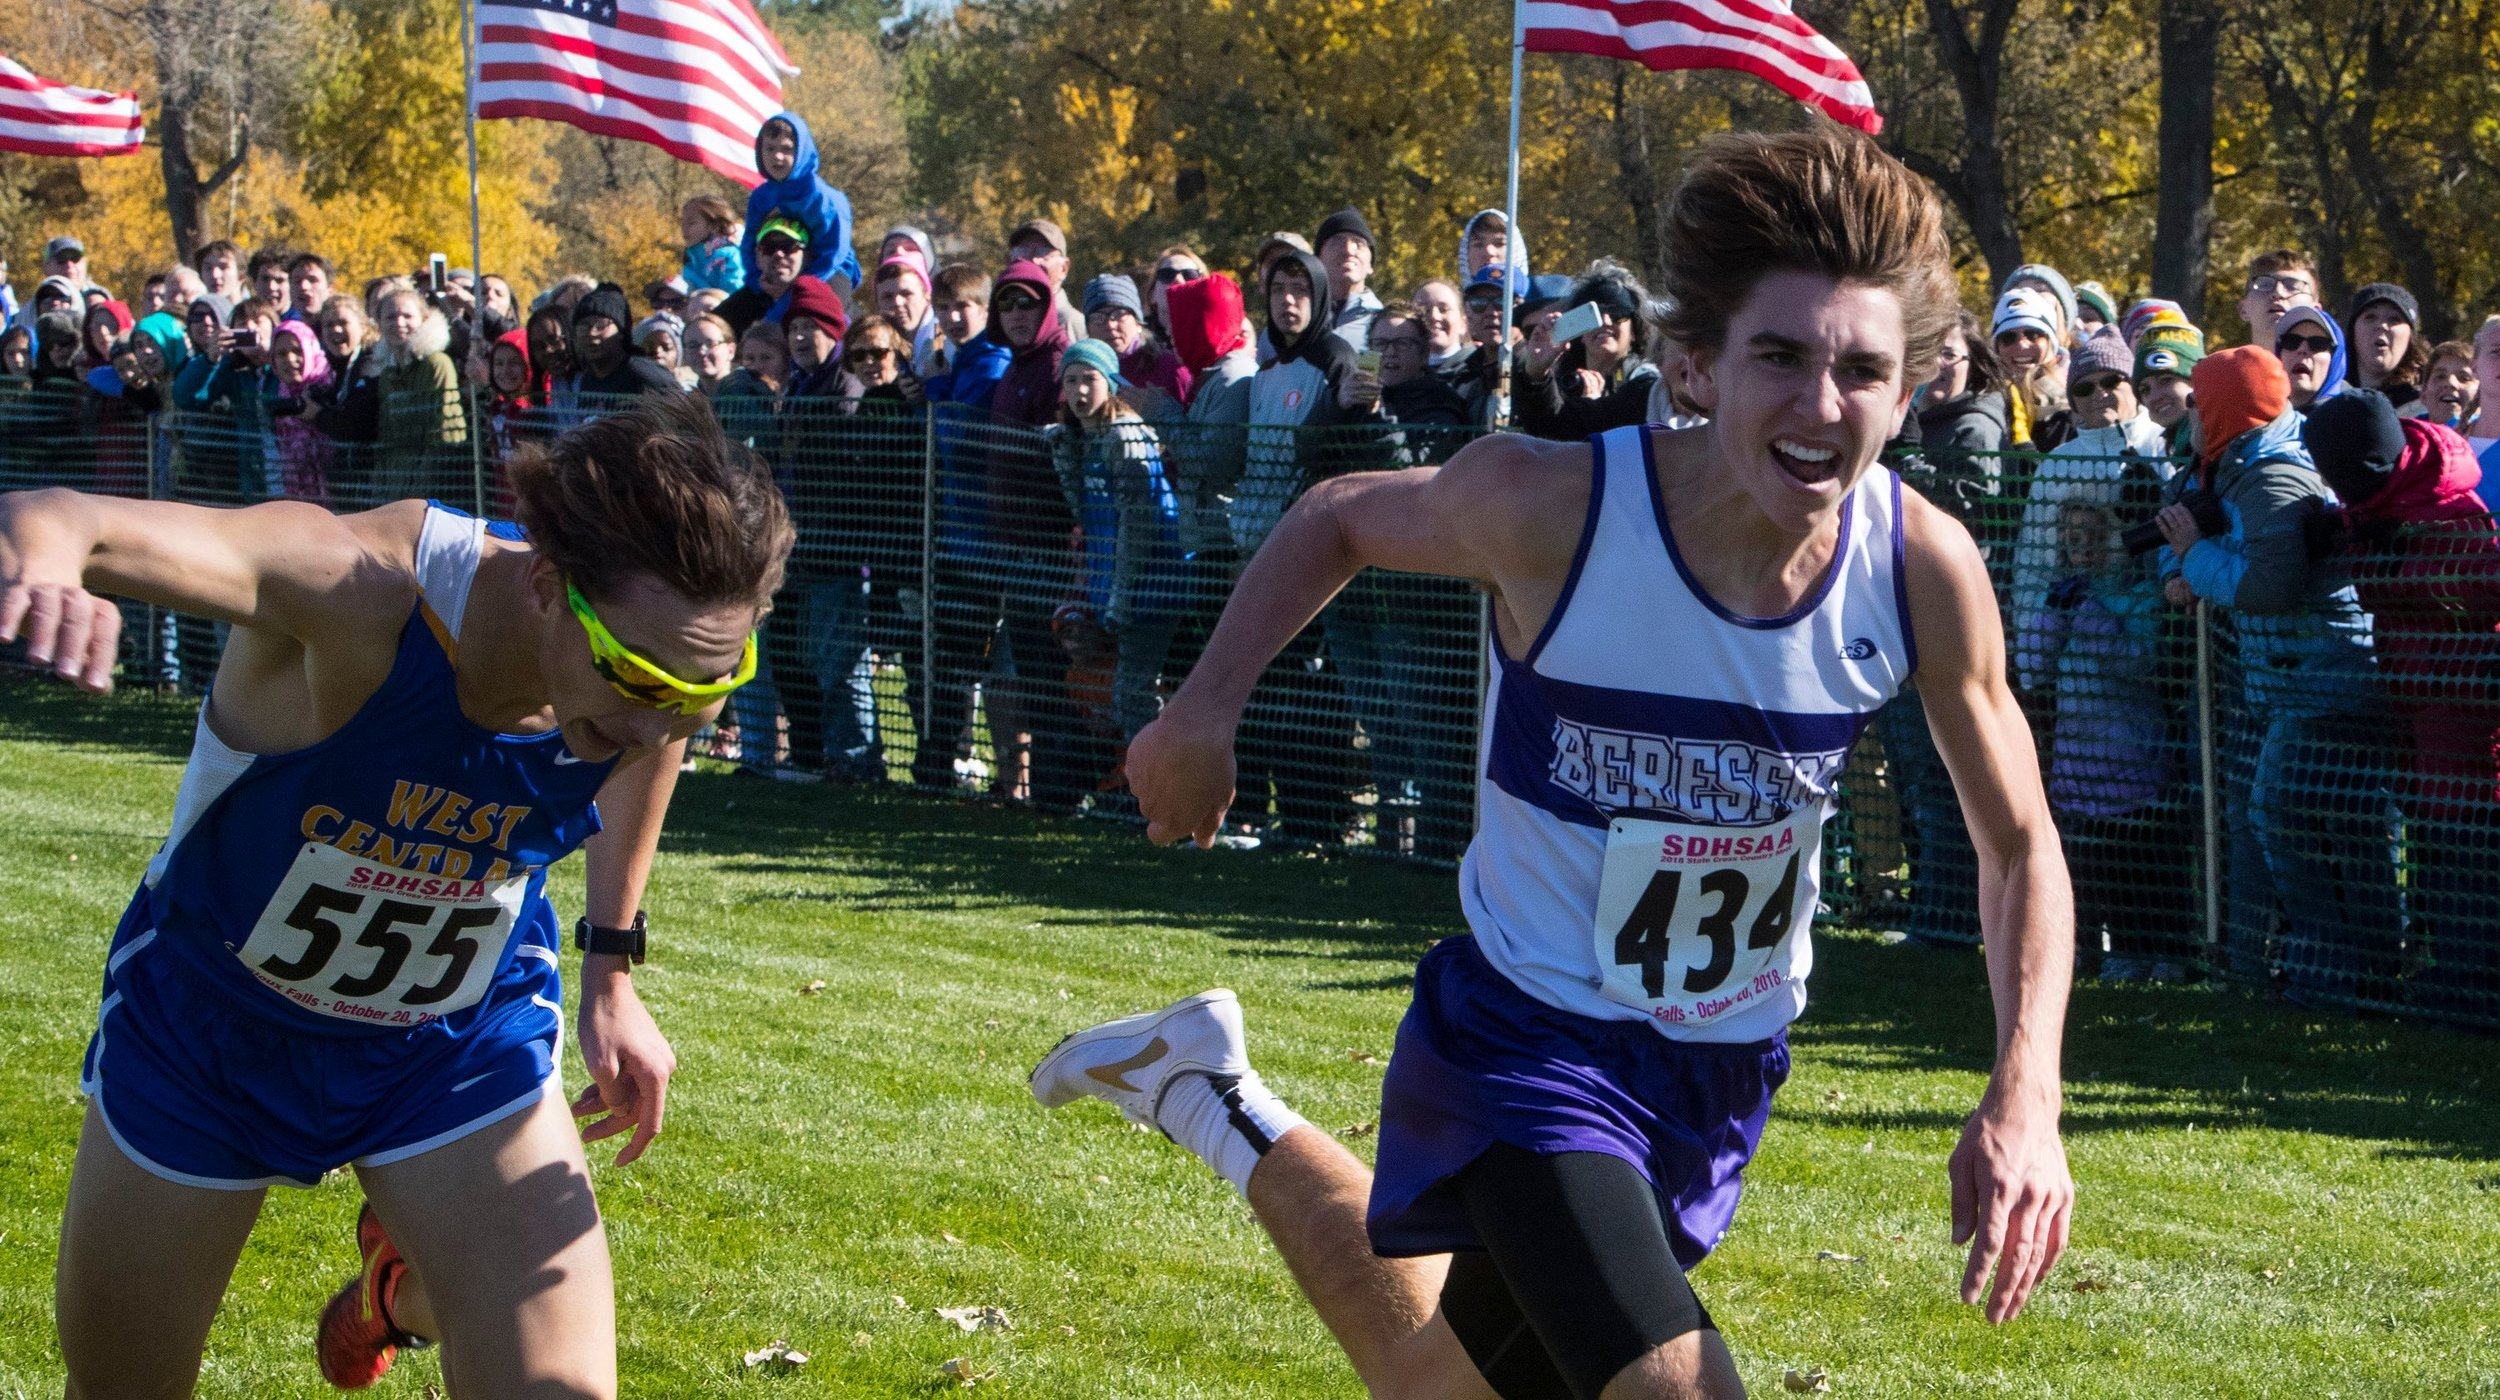 - Last fall, Atwood out-leaned Braden Peters in a thrilling finish of the Class A state cross-country meet.Lennox's Wulf was 3rd.Side note, Wulf, Peters and Atwood will all be going to the University of South Dakota next fall to compete in track and cross-country.